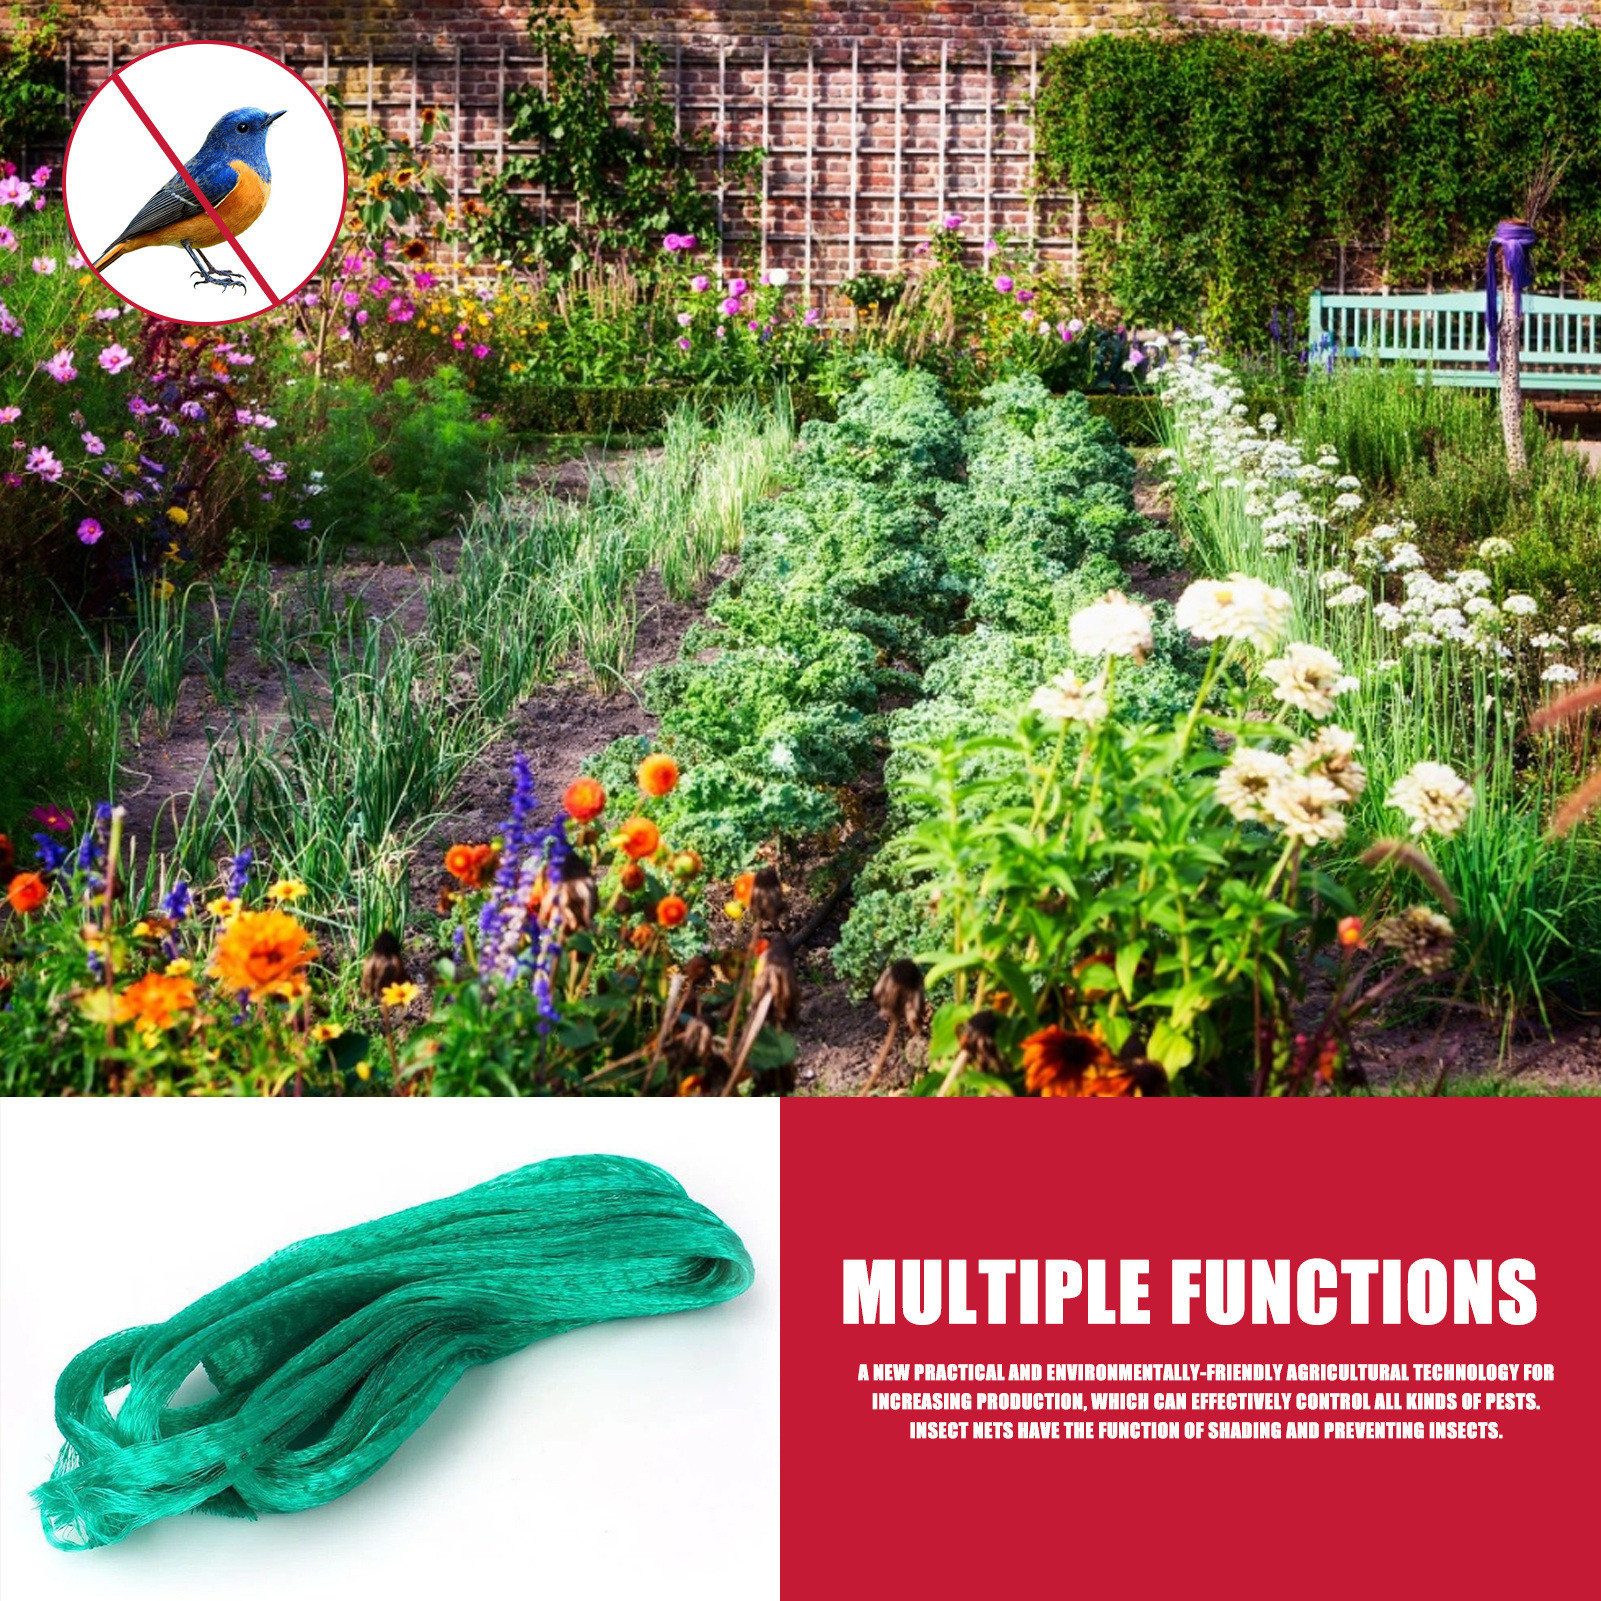 Mesh Garden Plant Netting Green Anti Bird Protection Net Protect Plants And Fruit Trees From Birds Poultry Best Insect-proof Net